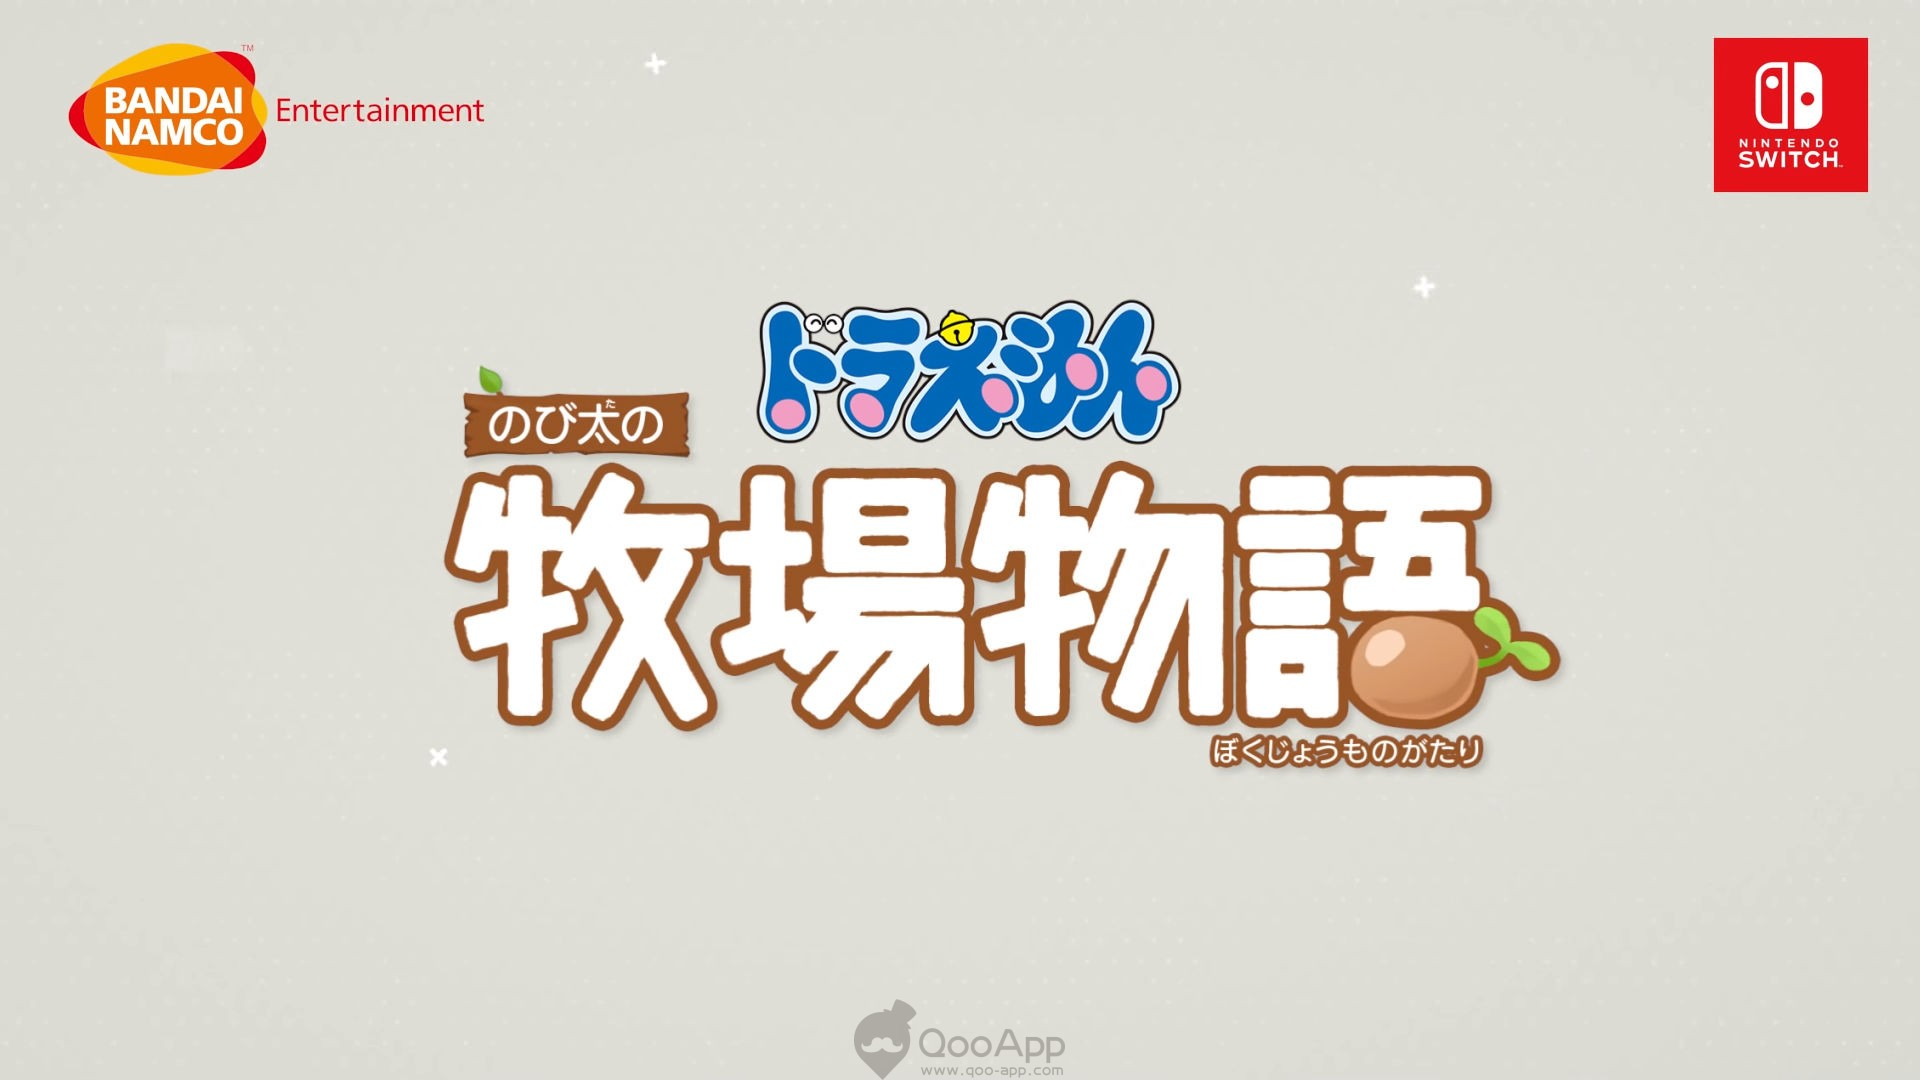 Two Classics Combined Doraemon x Story of Seasons Game Revealed